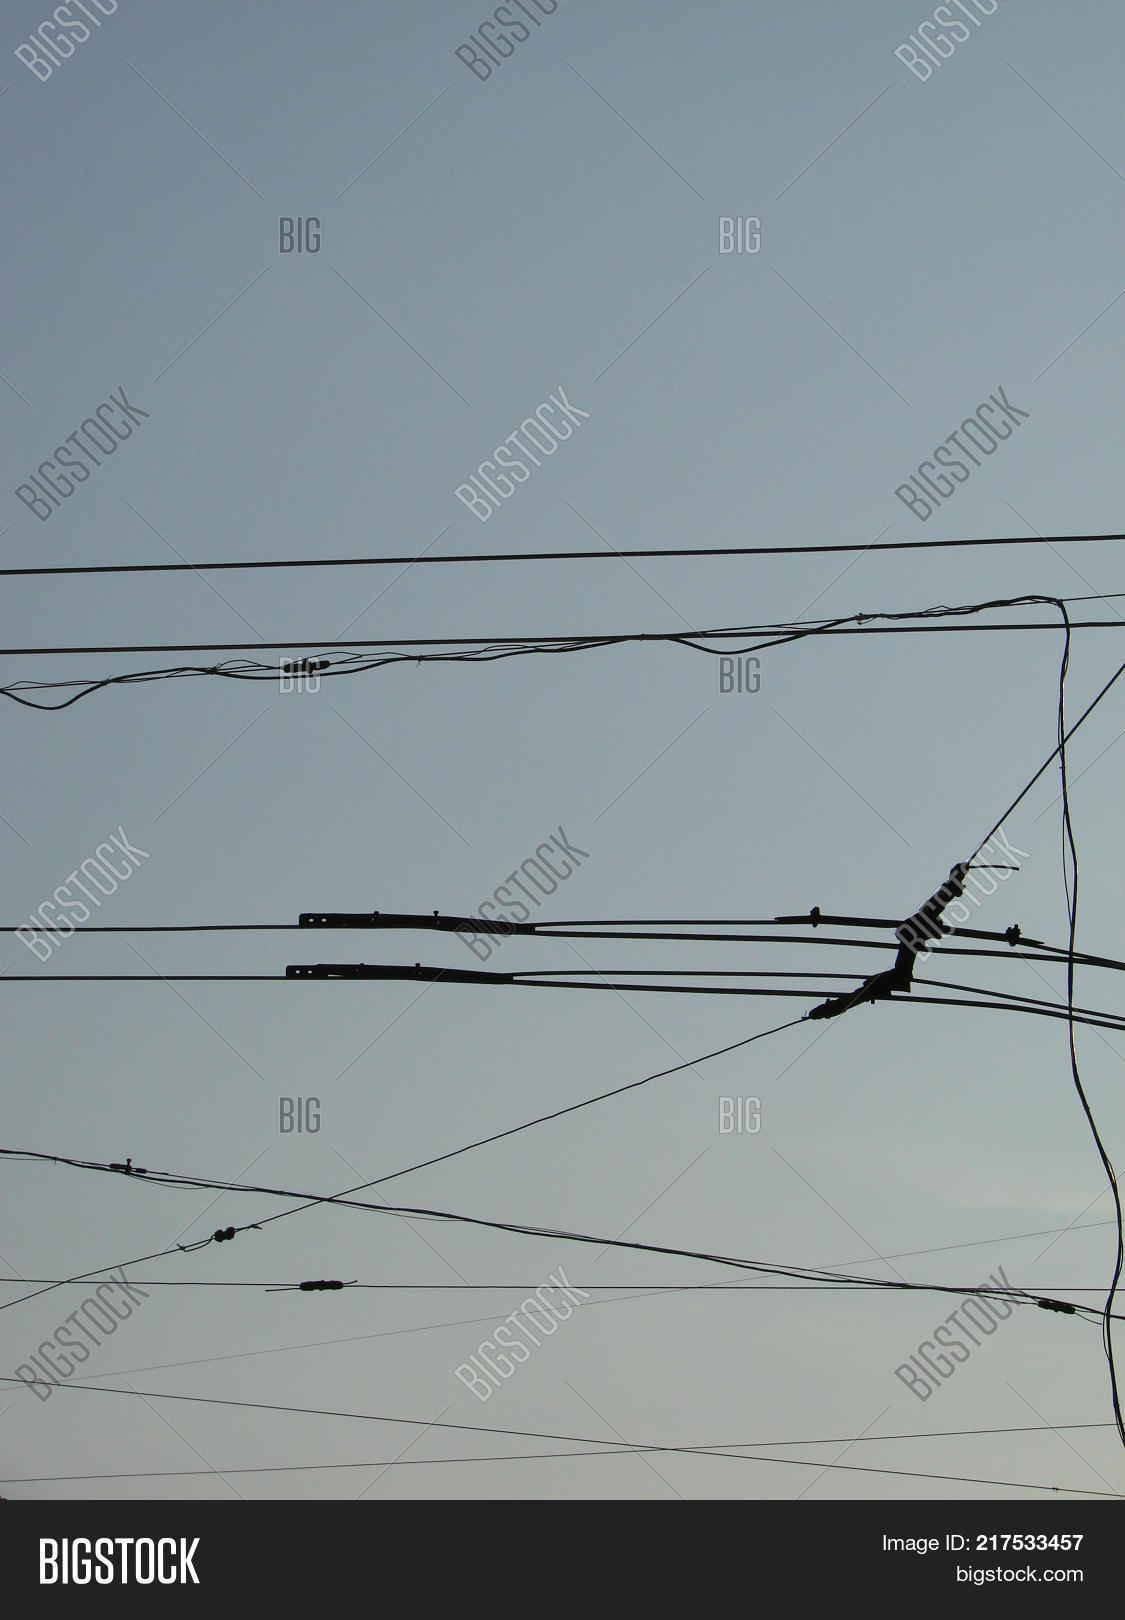 sky phone line wiring diagram wires pole blue sky image   photo  free trial  bigstock  wires pole blue sky image   photo